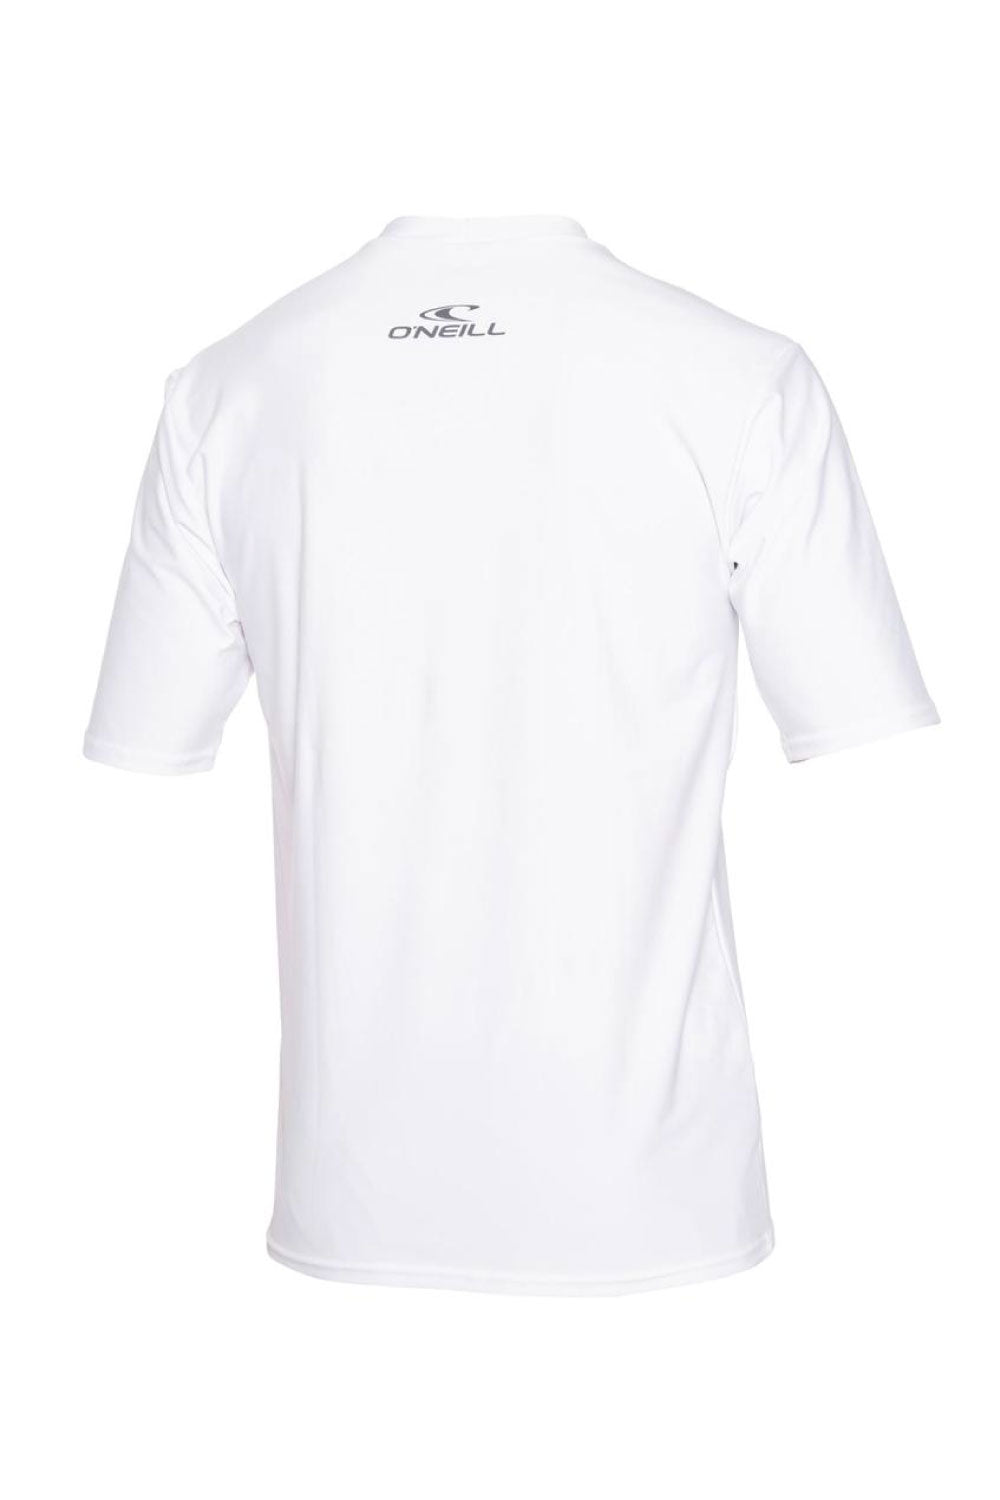 O'Neill Men's Basic Skins Short Arm Rashie Tee